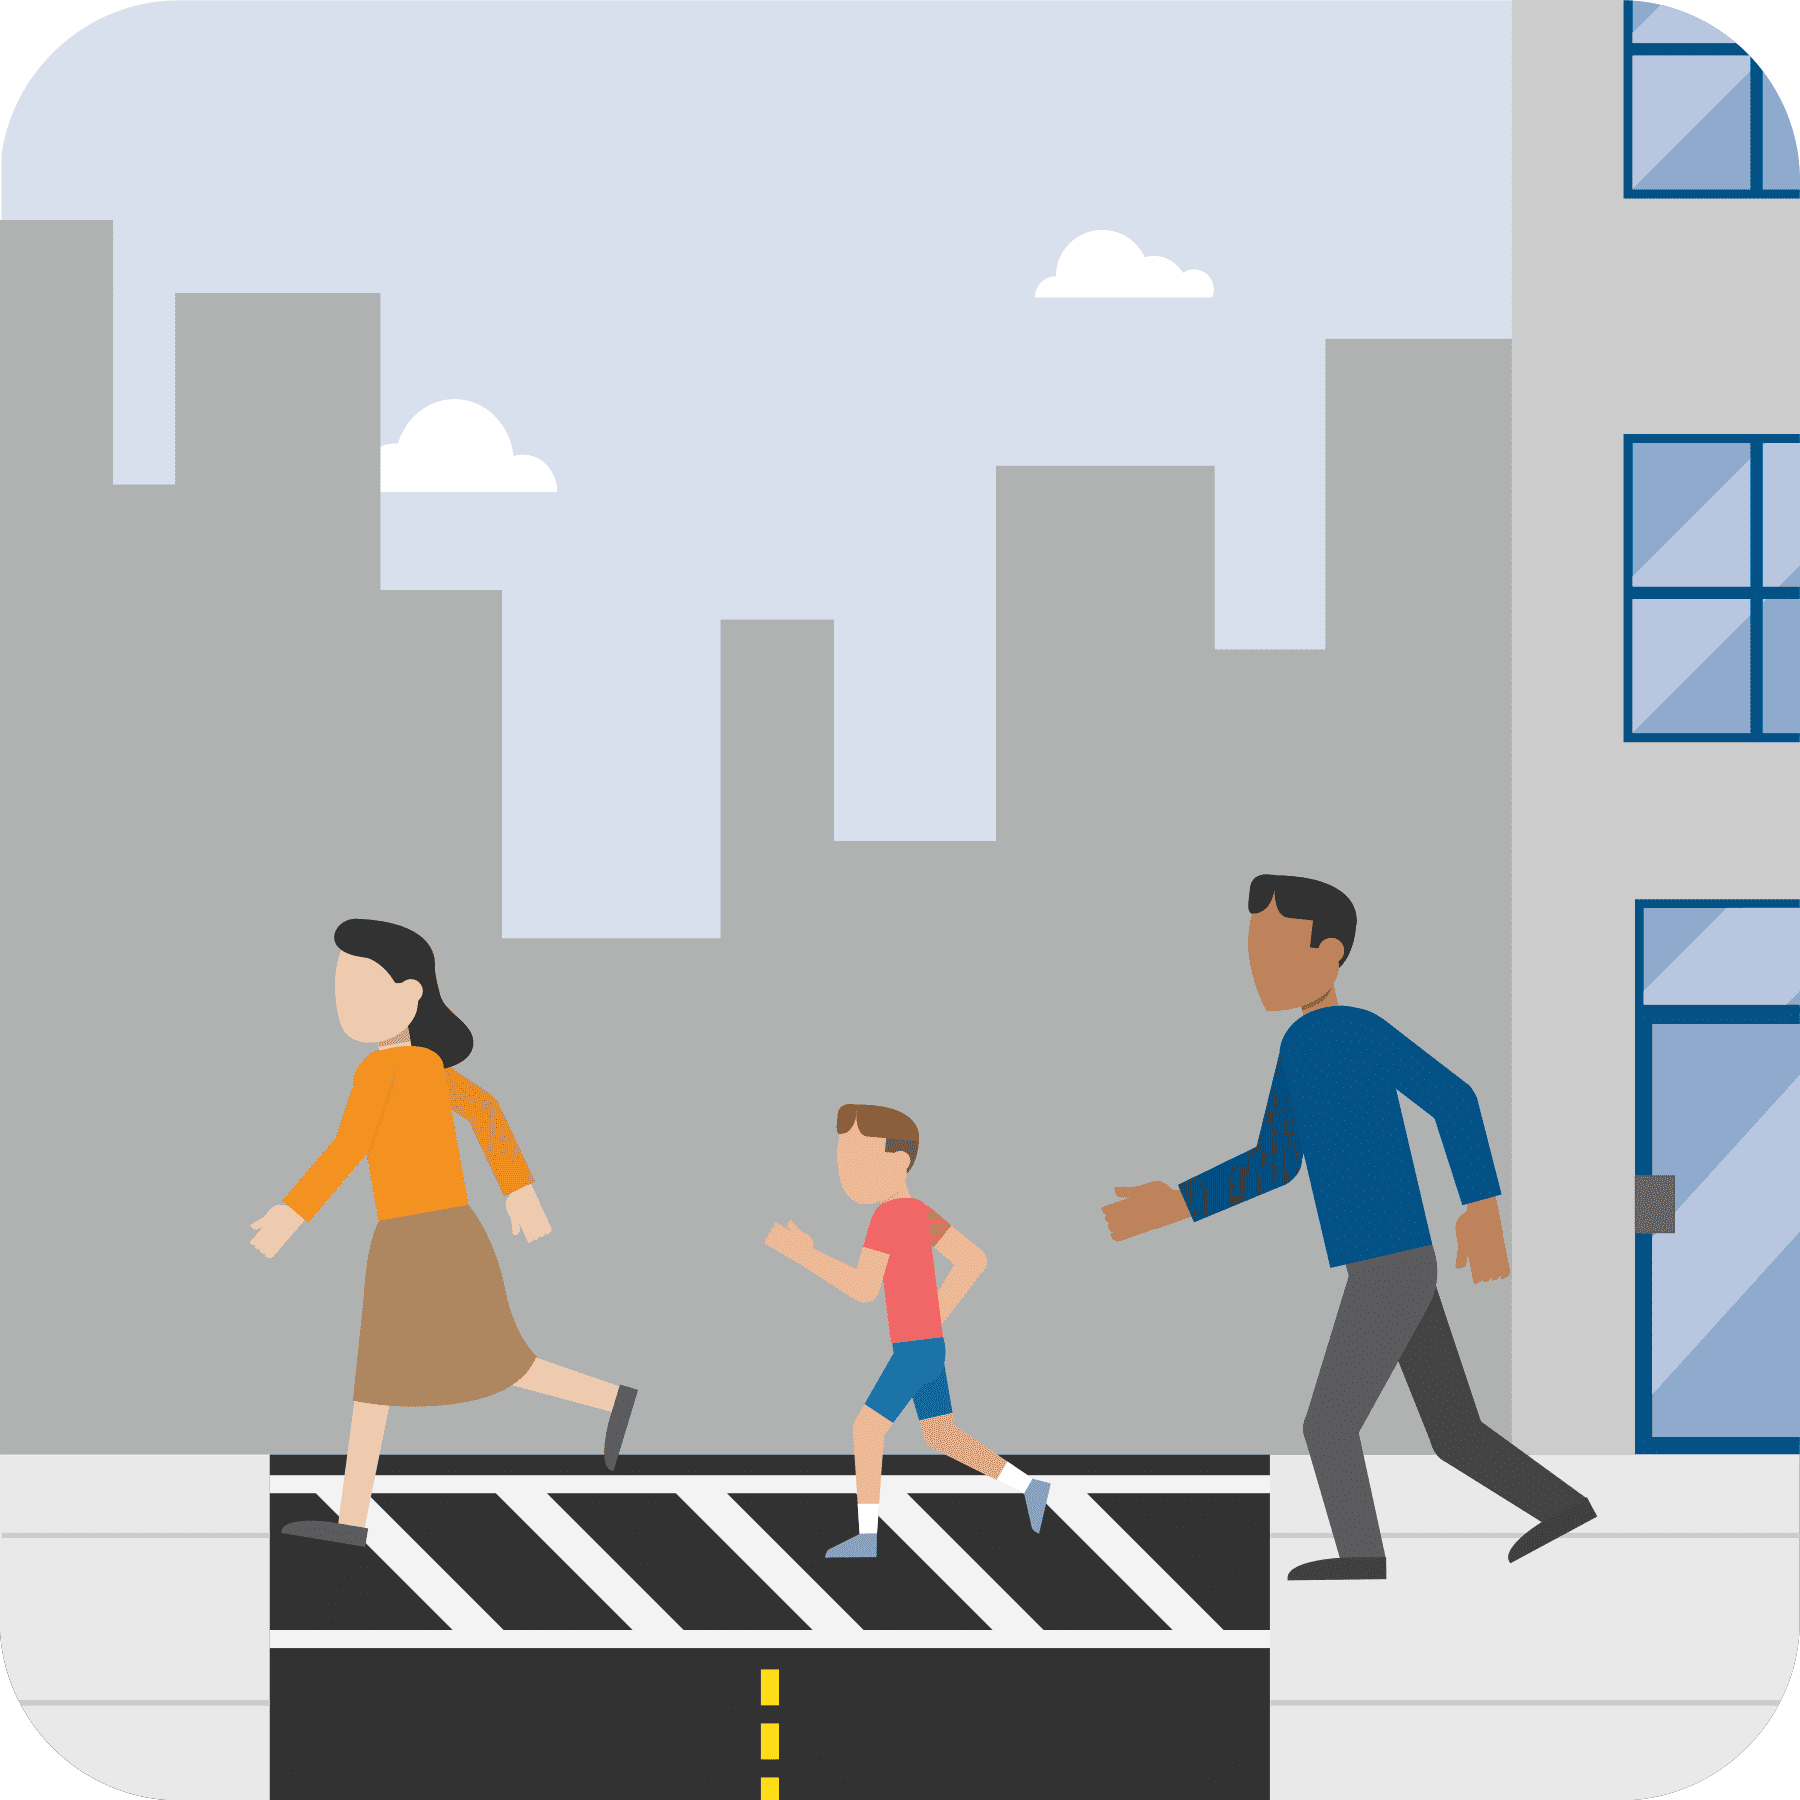 A woman, young child and man are exiting a building and crossing the street to a safe place